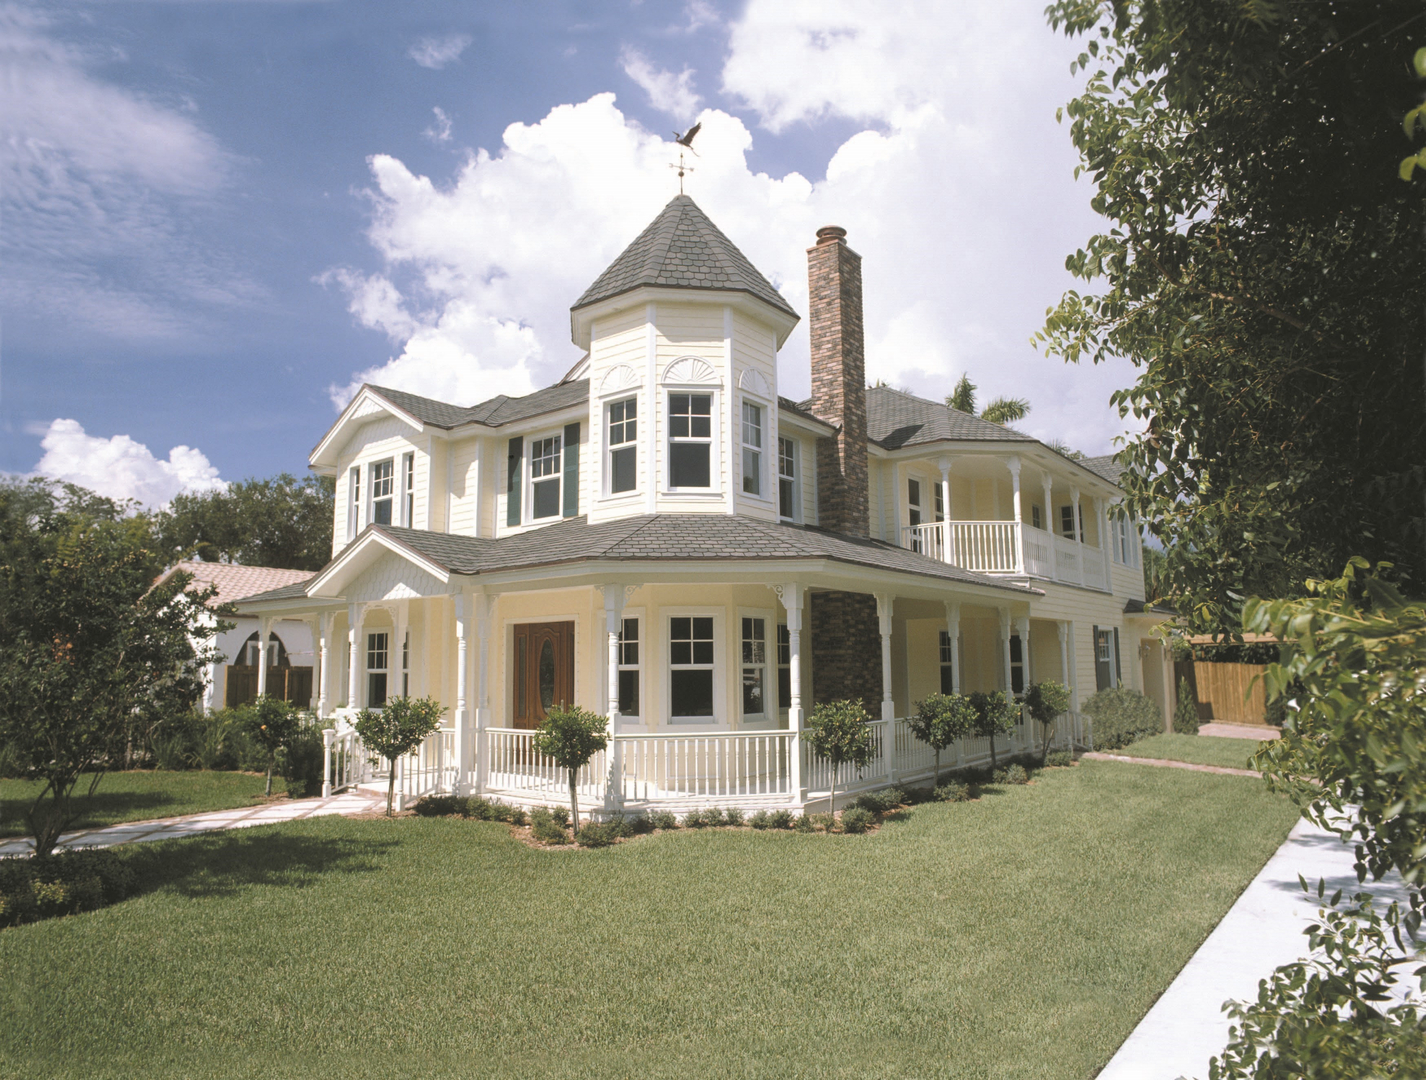 Victorian Style Home Construction Company in South Florida on